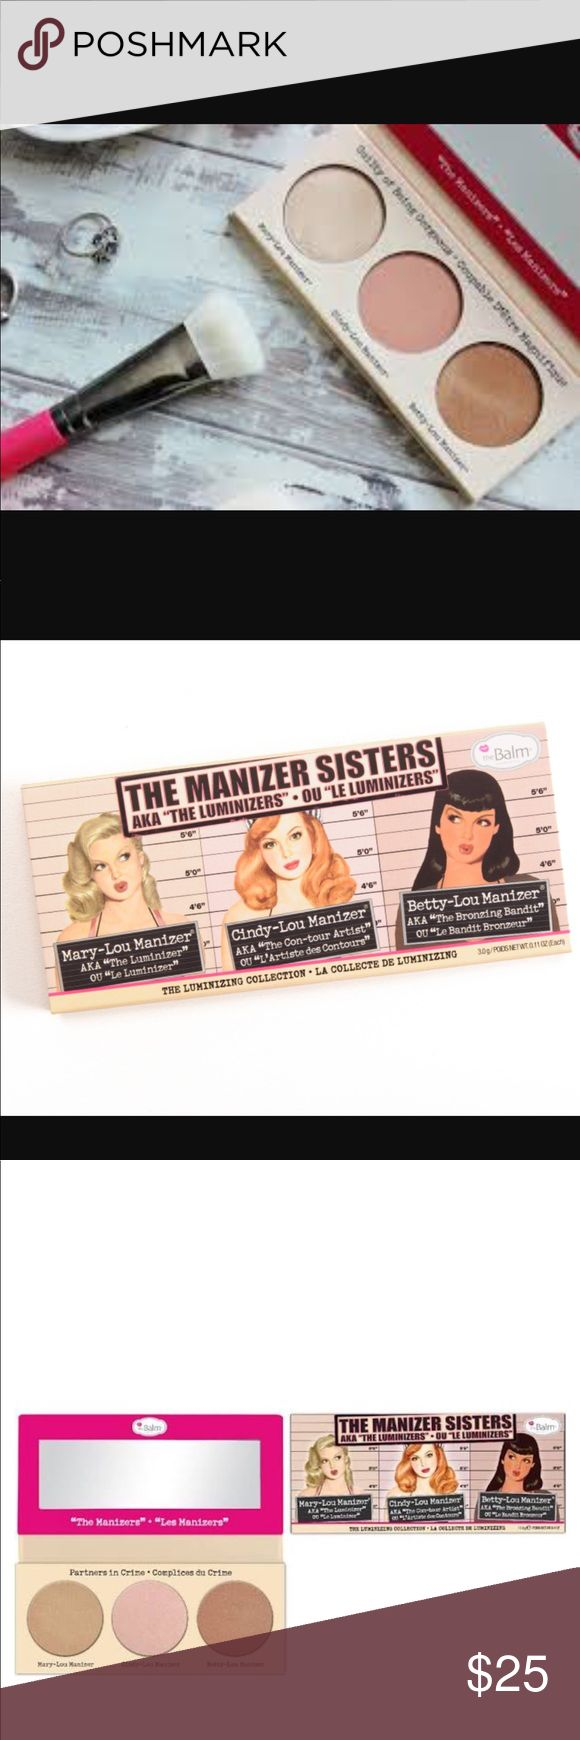 The Balm The Manizer Sisters Luminizing Collection The Balm The Manizer Sisters Luminizing Collection. Includes Mary-Lou Manizer, Cindy-Lou Manizer and Betty-Lou Manizer. Used a few times. Great Condition. The Balm Makeup